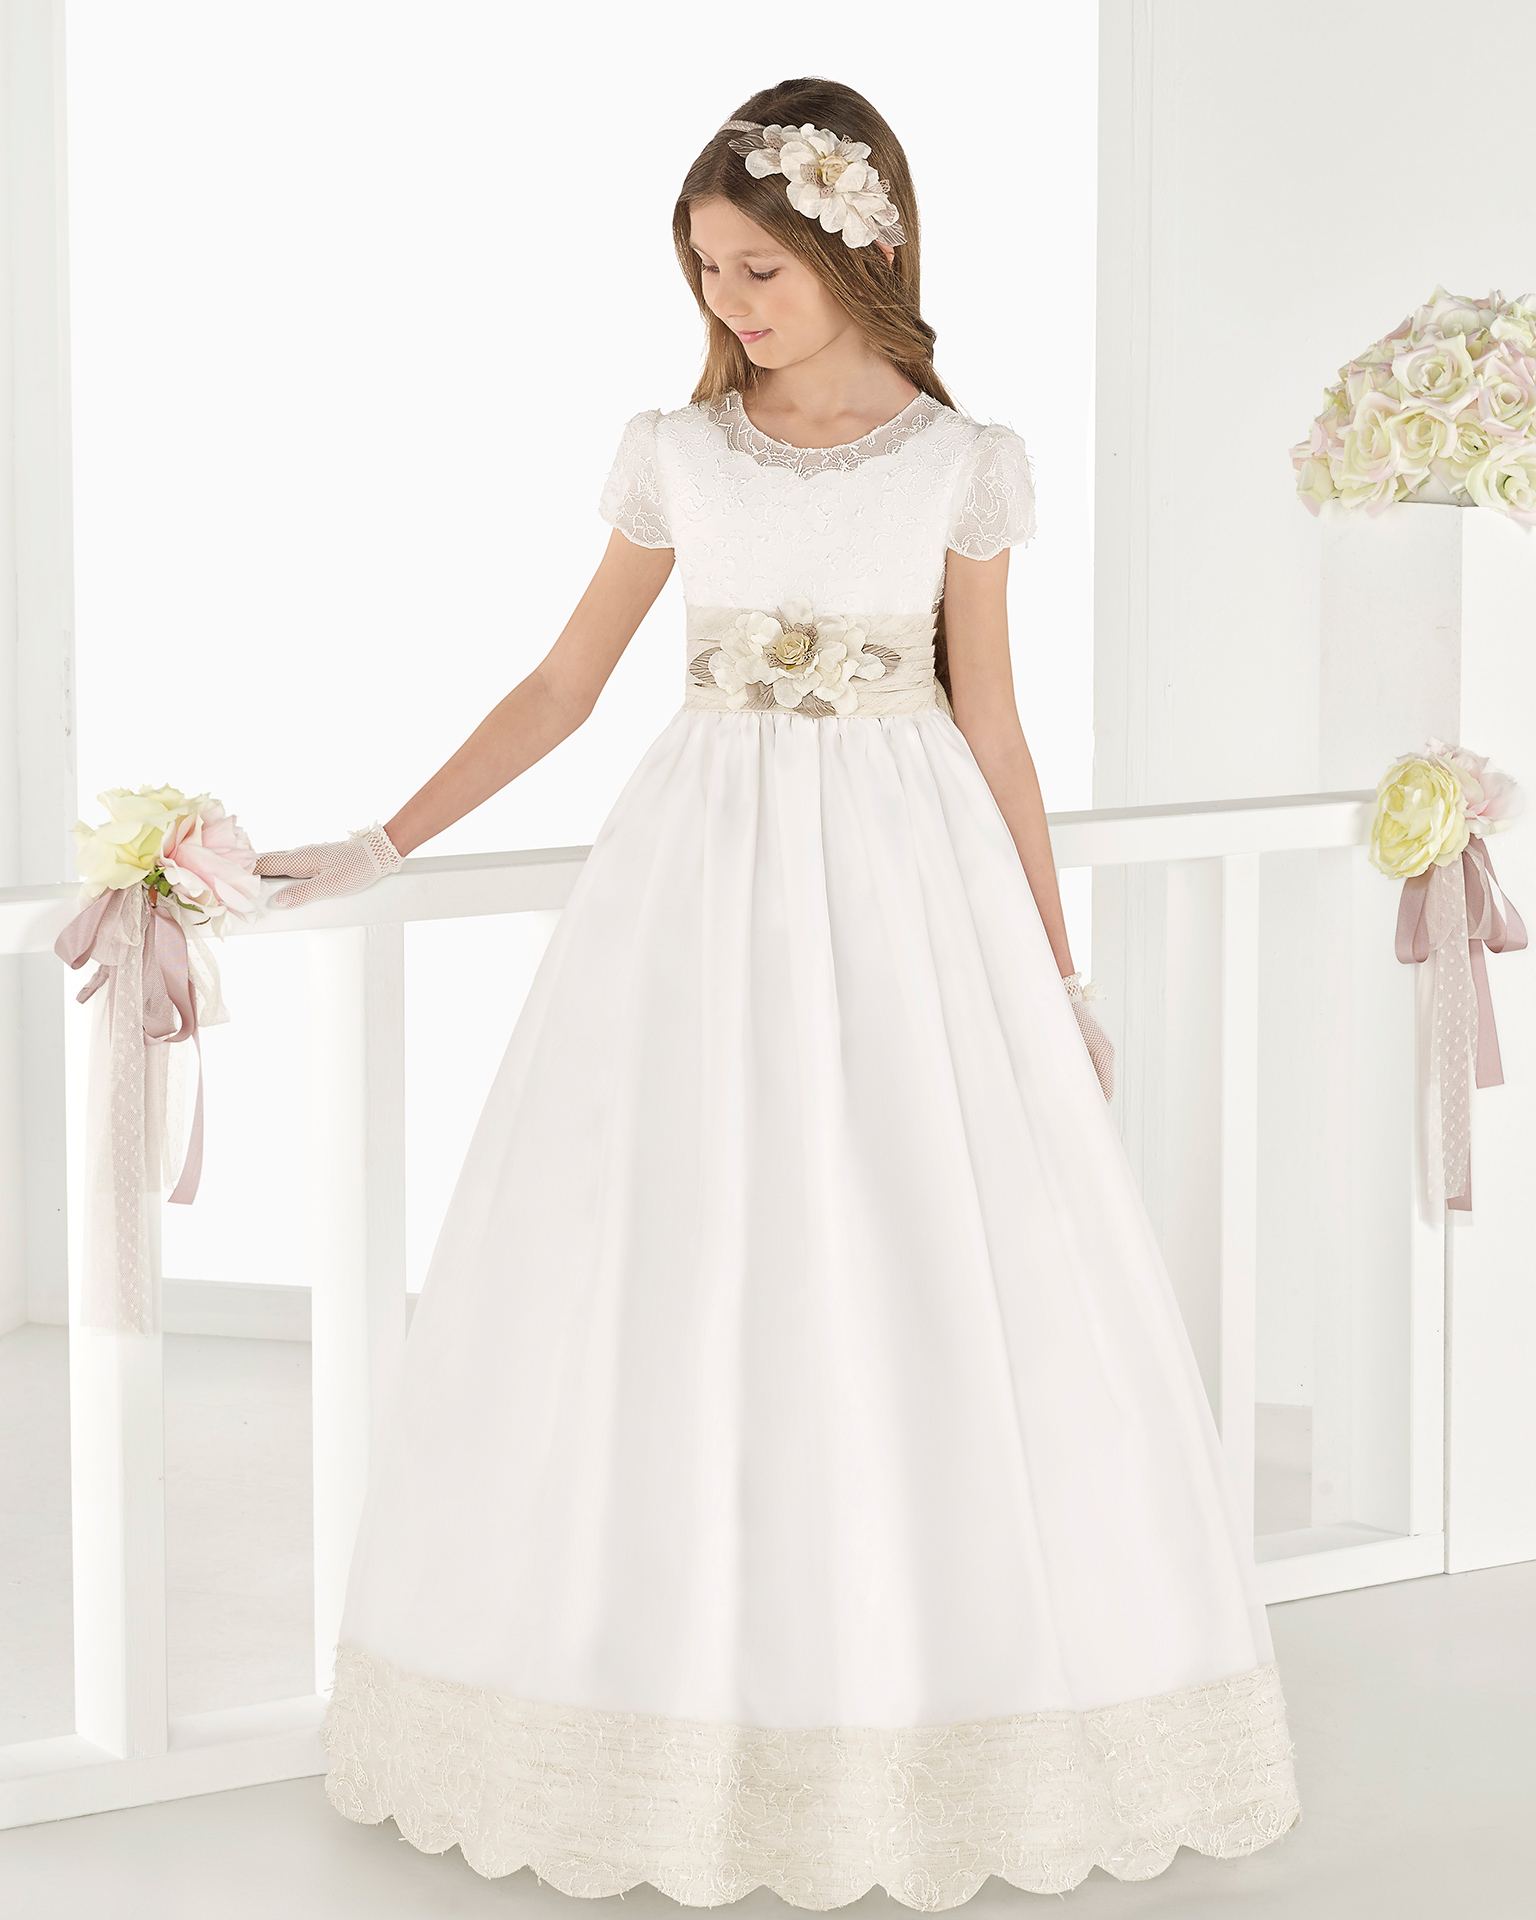 Classic matt organza First Communion or bridesmaid's dress with empire waist, in natural. 2018 AIRE COMUNION Collection.